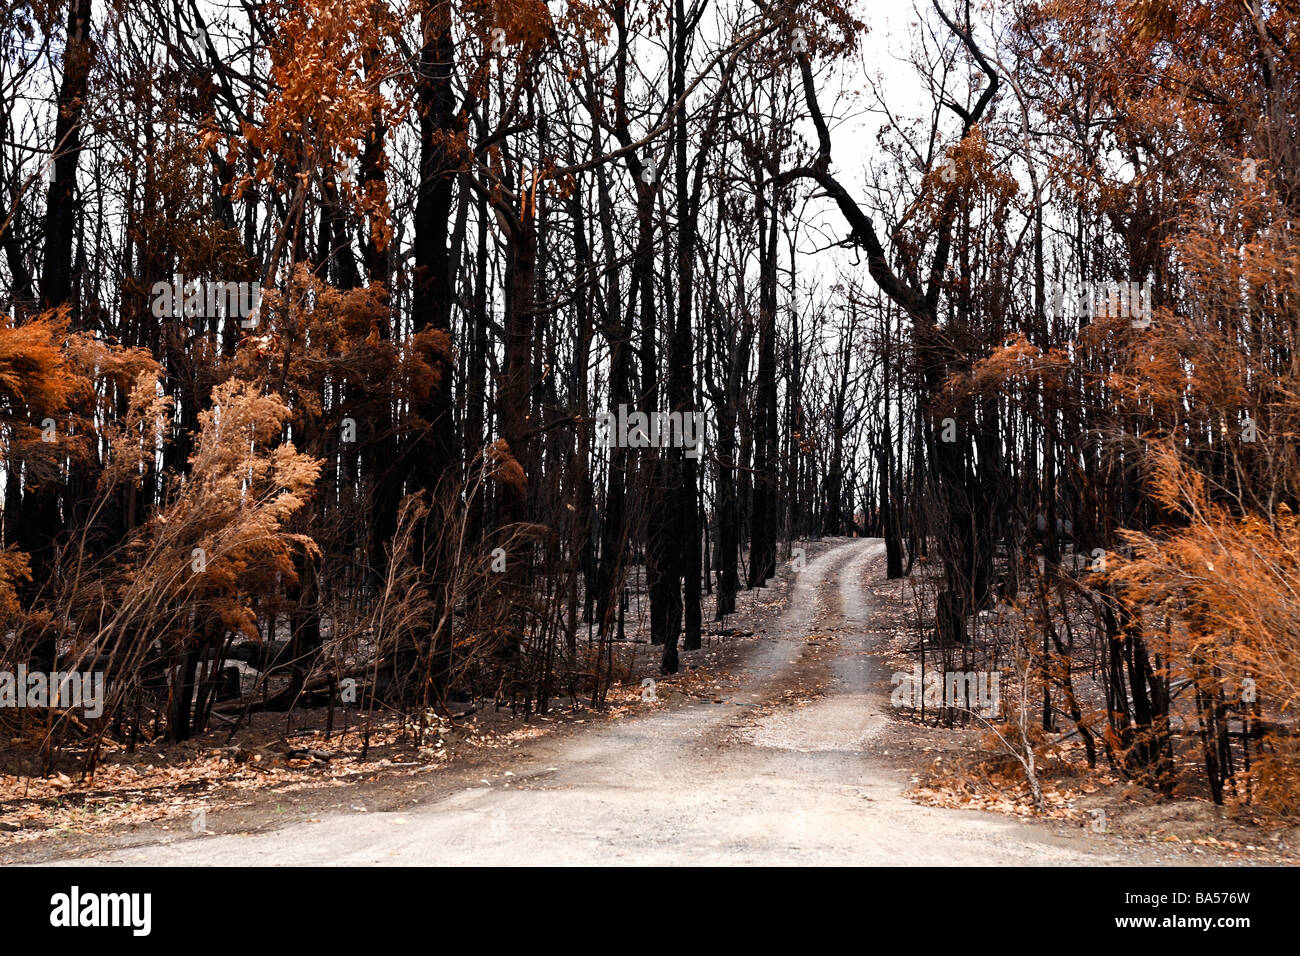 Country dirt road through a burnt eucalyptus forest after the black saturday bushfires Churchhill Victoria Australia - Stock Image